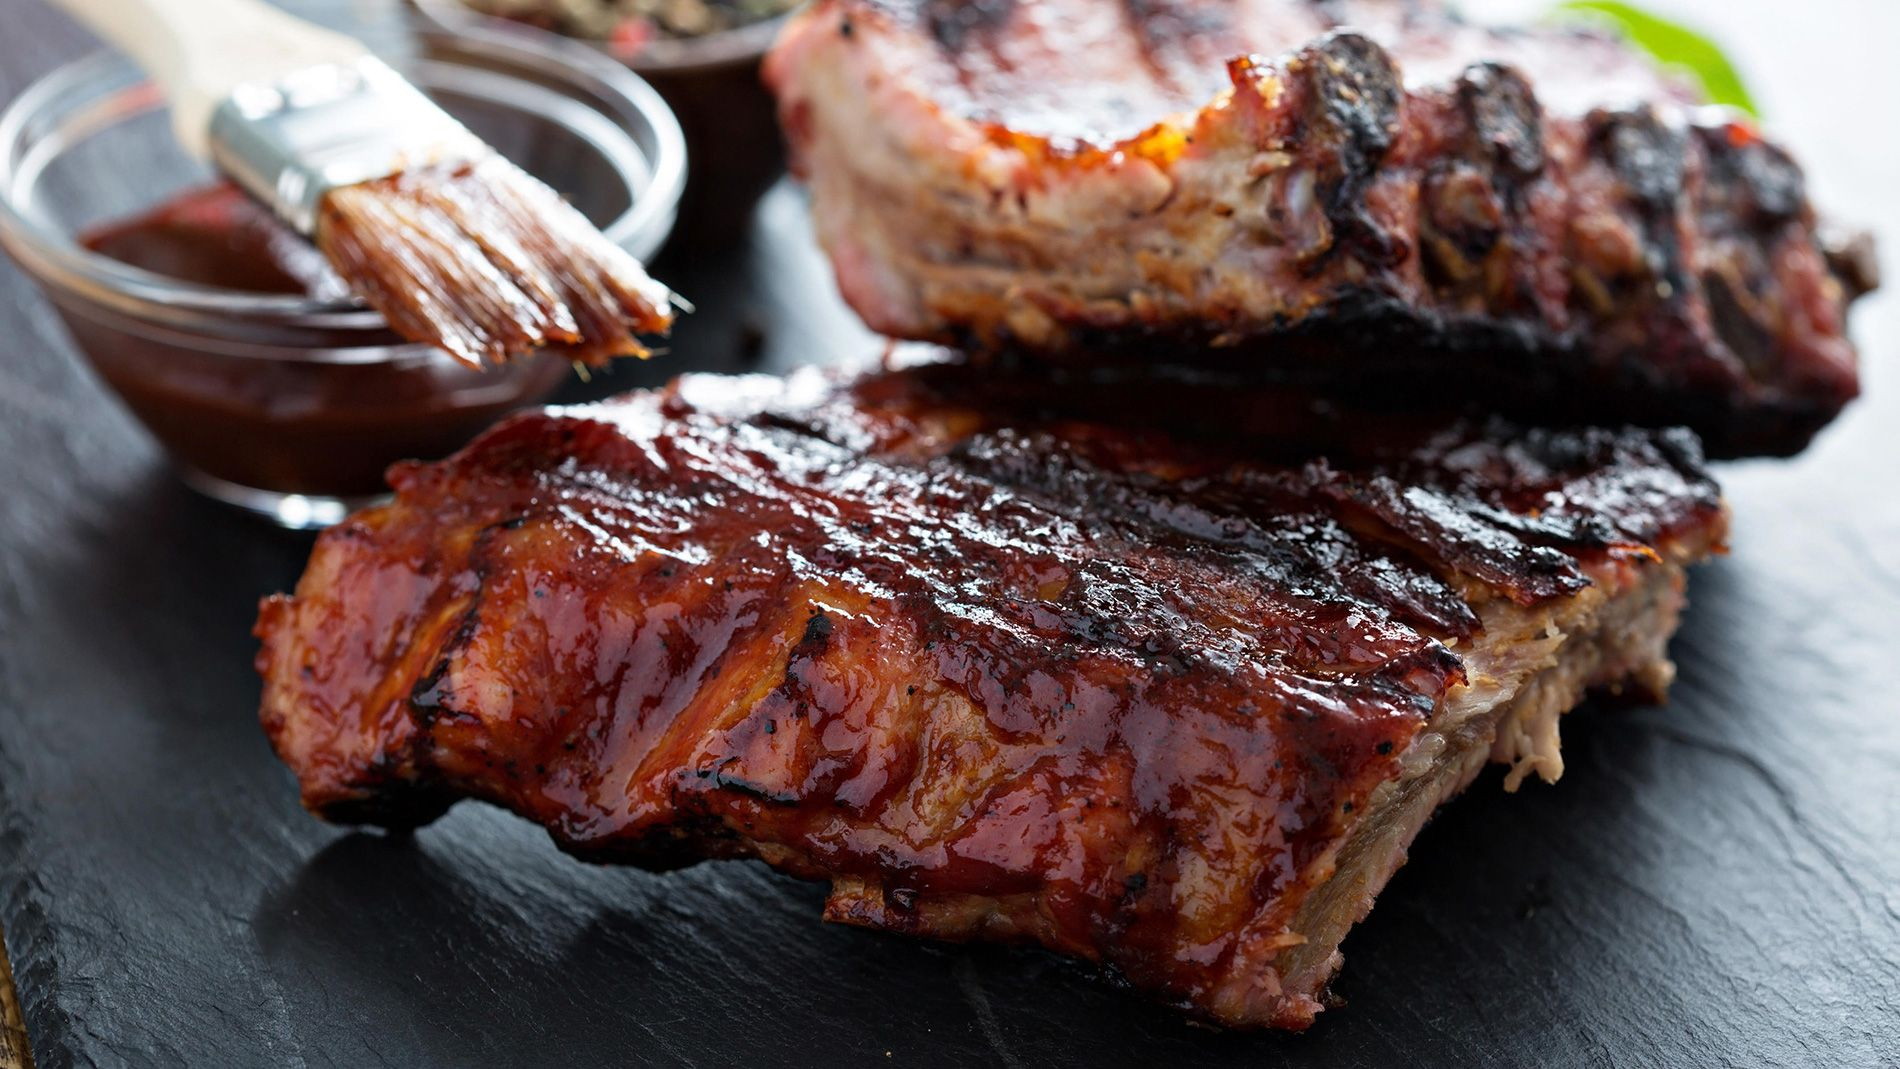 Best Oven Grilled Ribs Recipe With Chocolate Bbq Sauce Lindt Everyday Excellence Recipe Food Bbq Ribs Pork Ribs